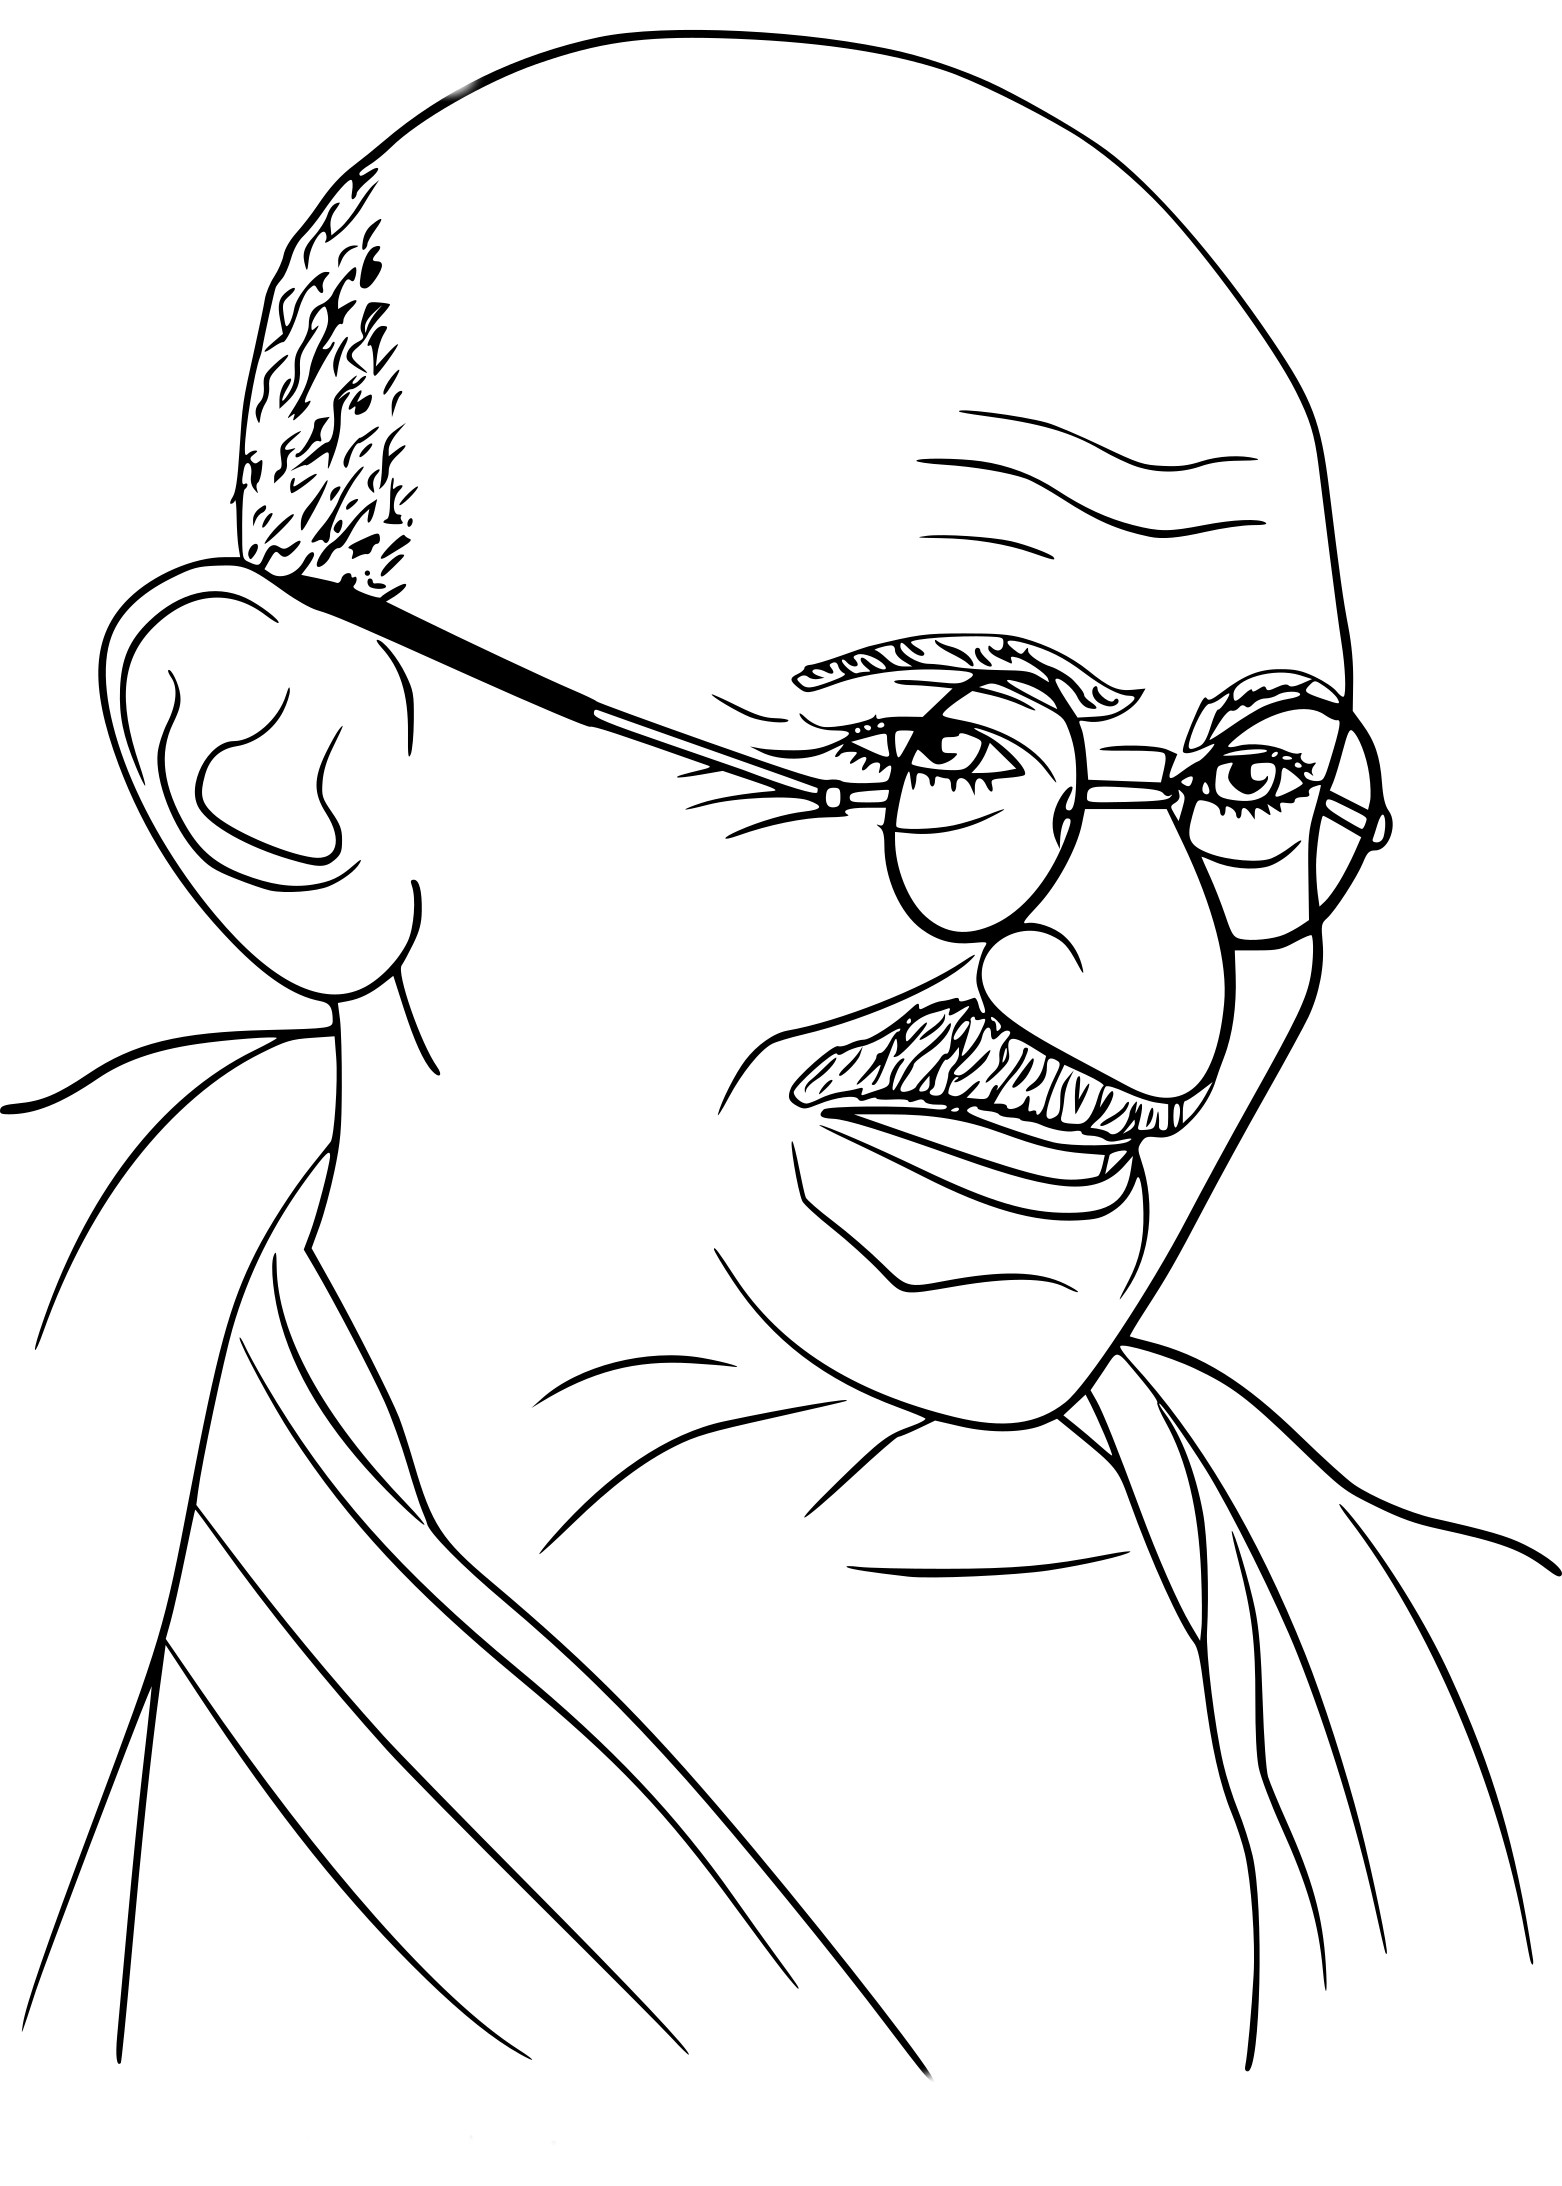 gandhiji standing coloring pages - photo#15